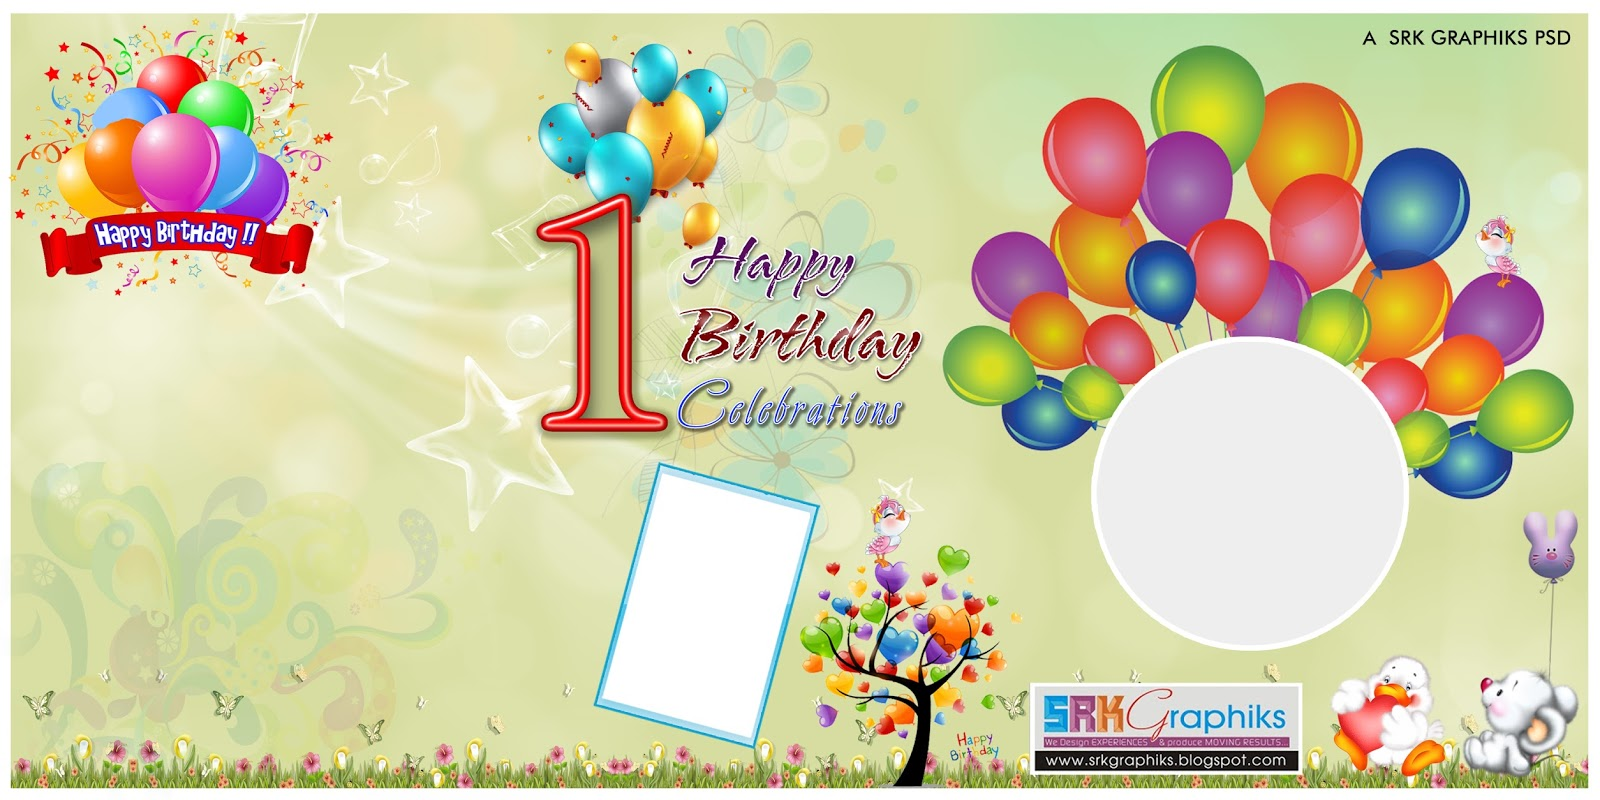 1st birthday banner background design ; 5%252B%2525C3%252597%252B10